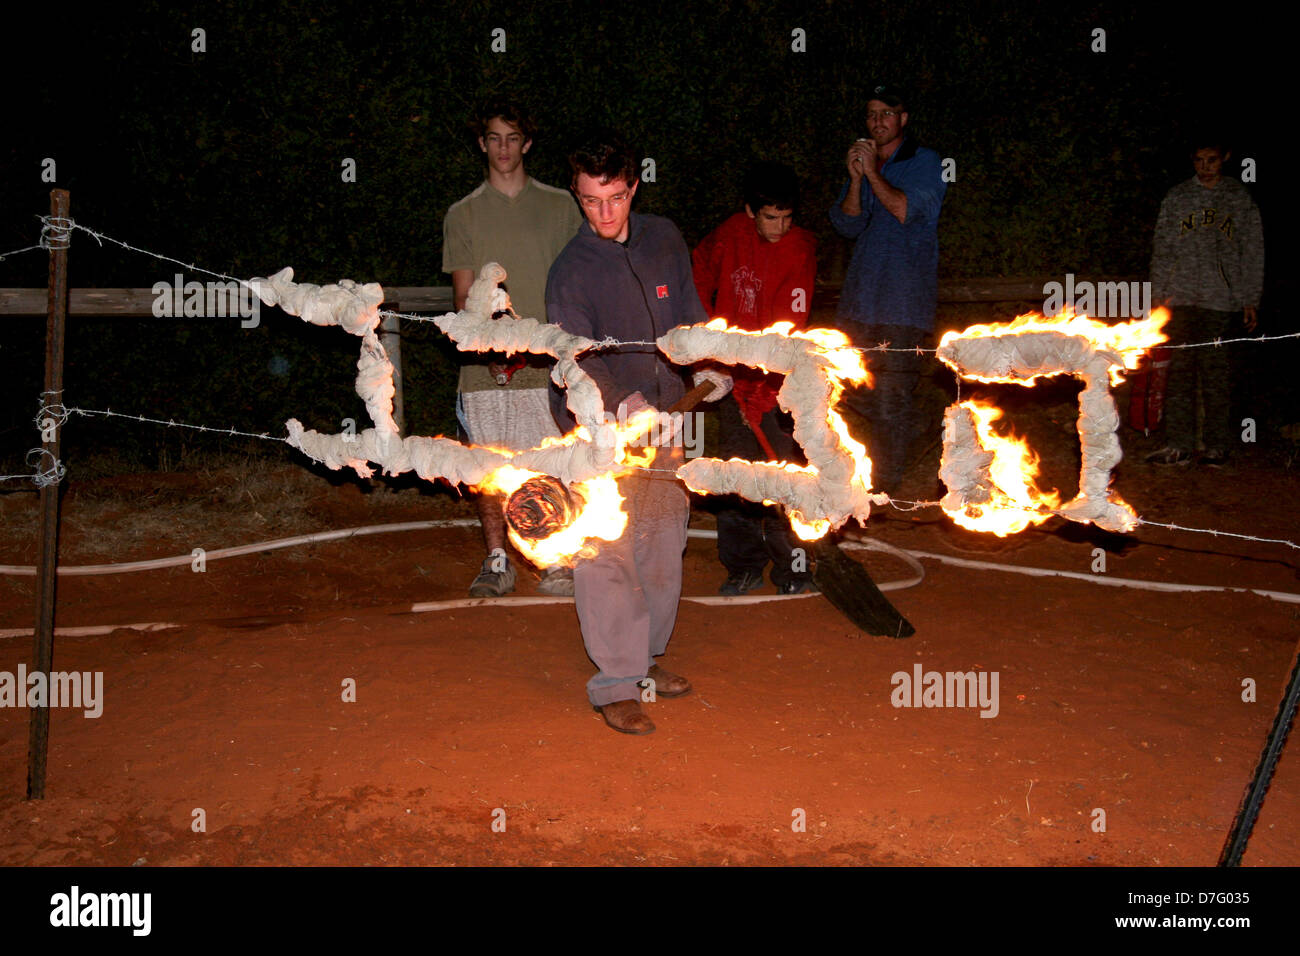 fire inscription lit during swearing in ceremony of youth movement - Stock Image